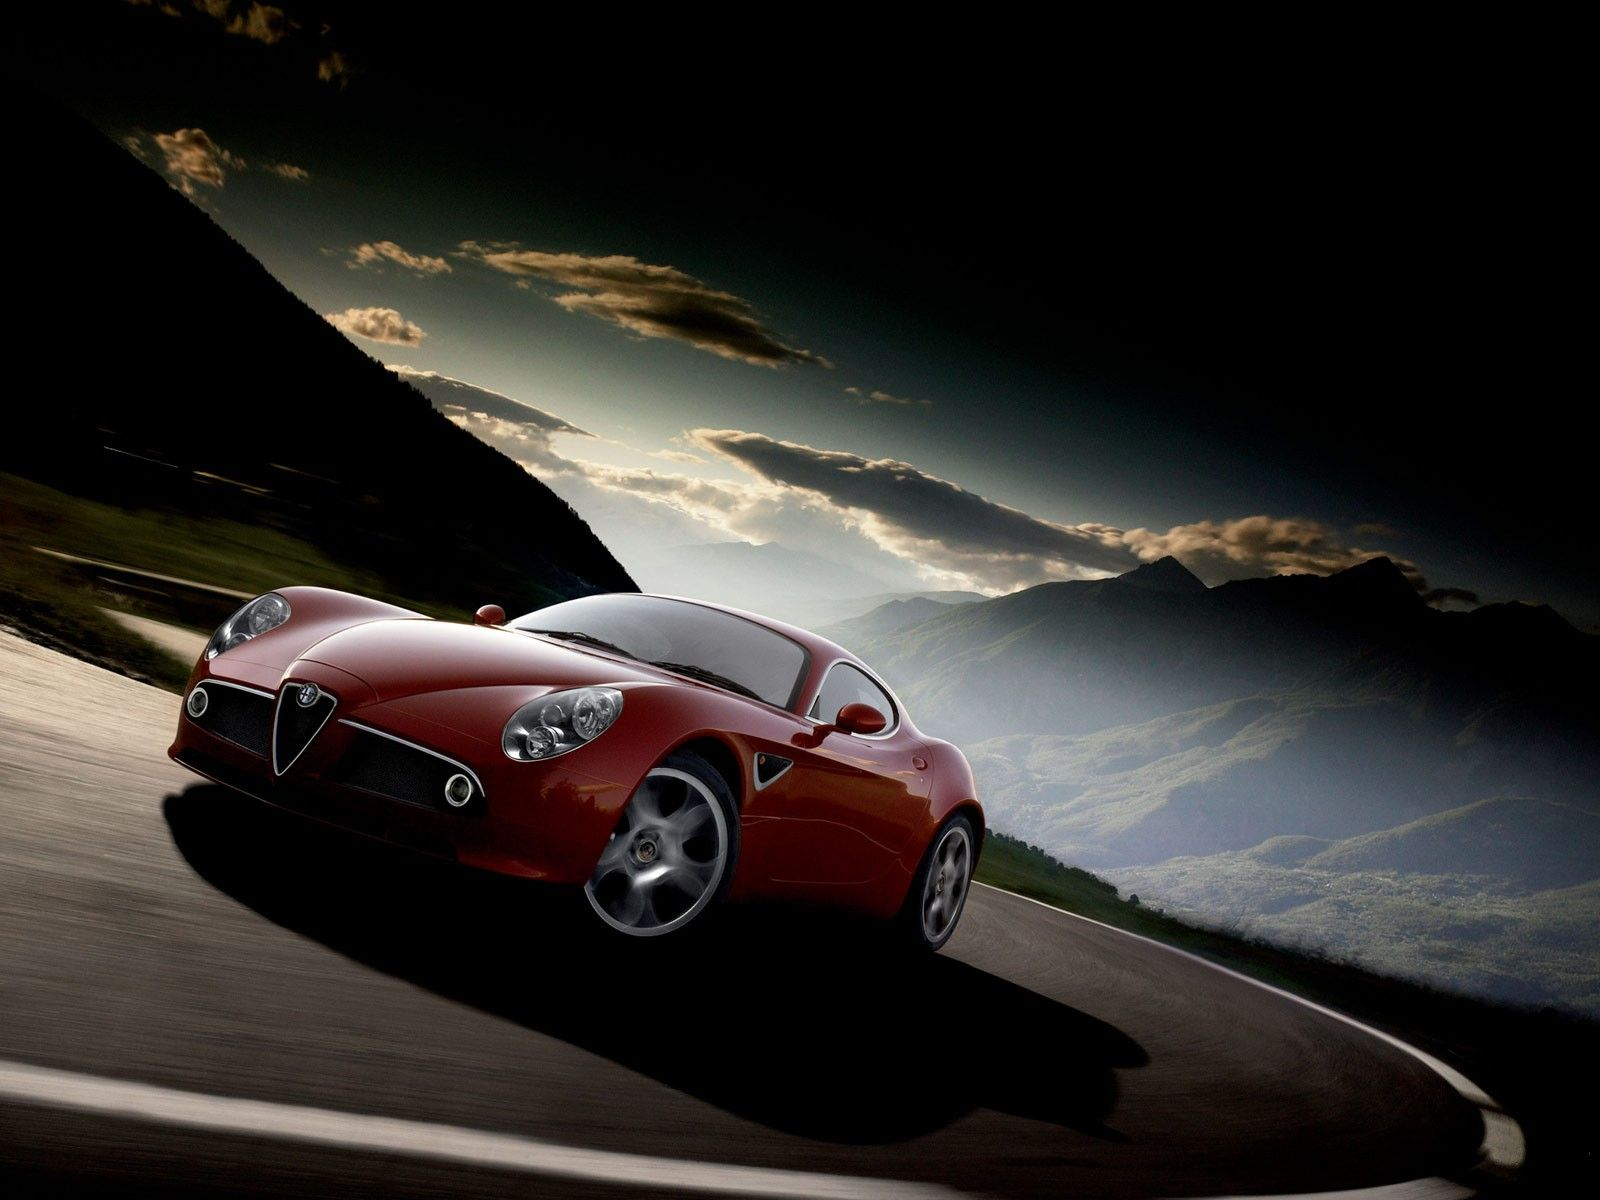 car vehicle road alfa romeo wallpapers and backgrounds